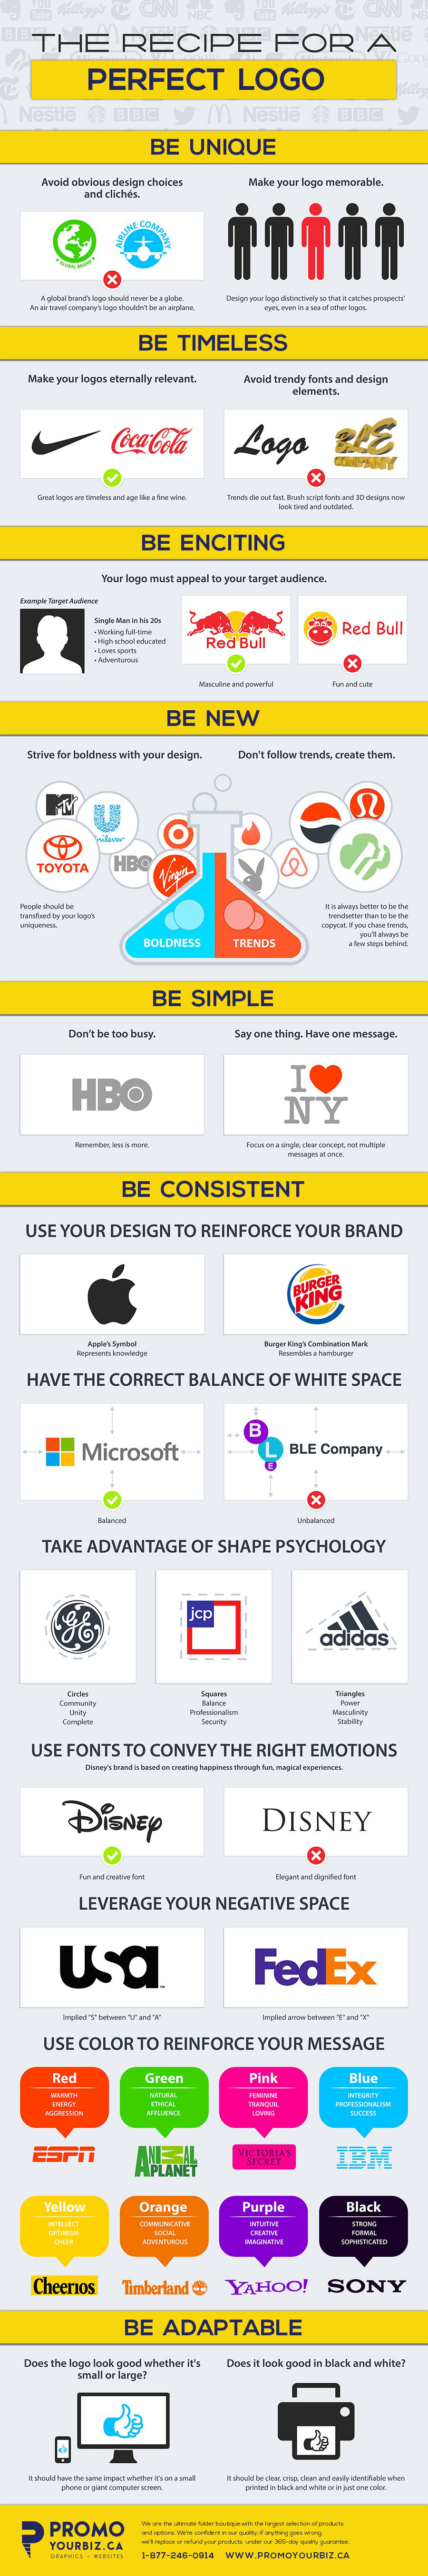 How to Design a Logo That Withstands the Test of Time?